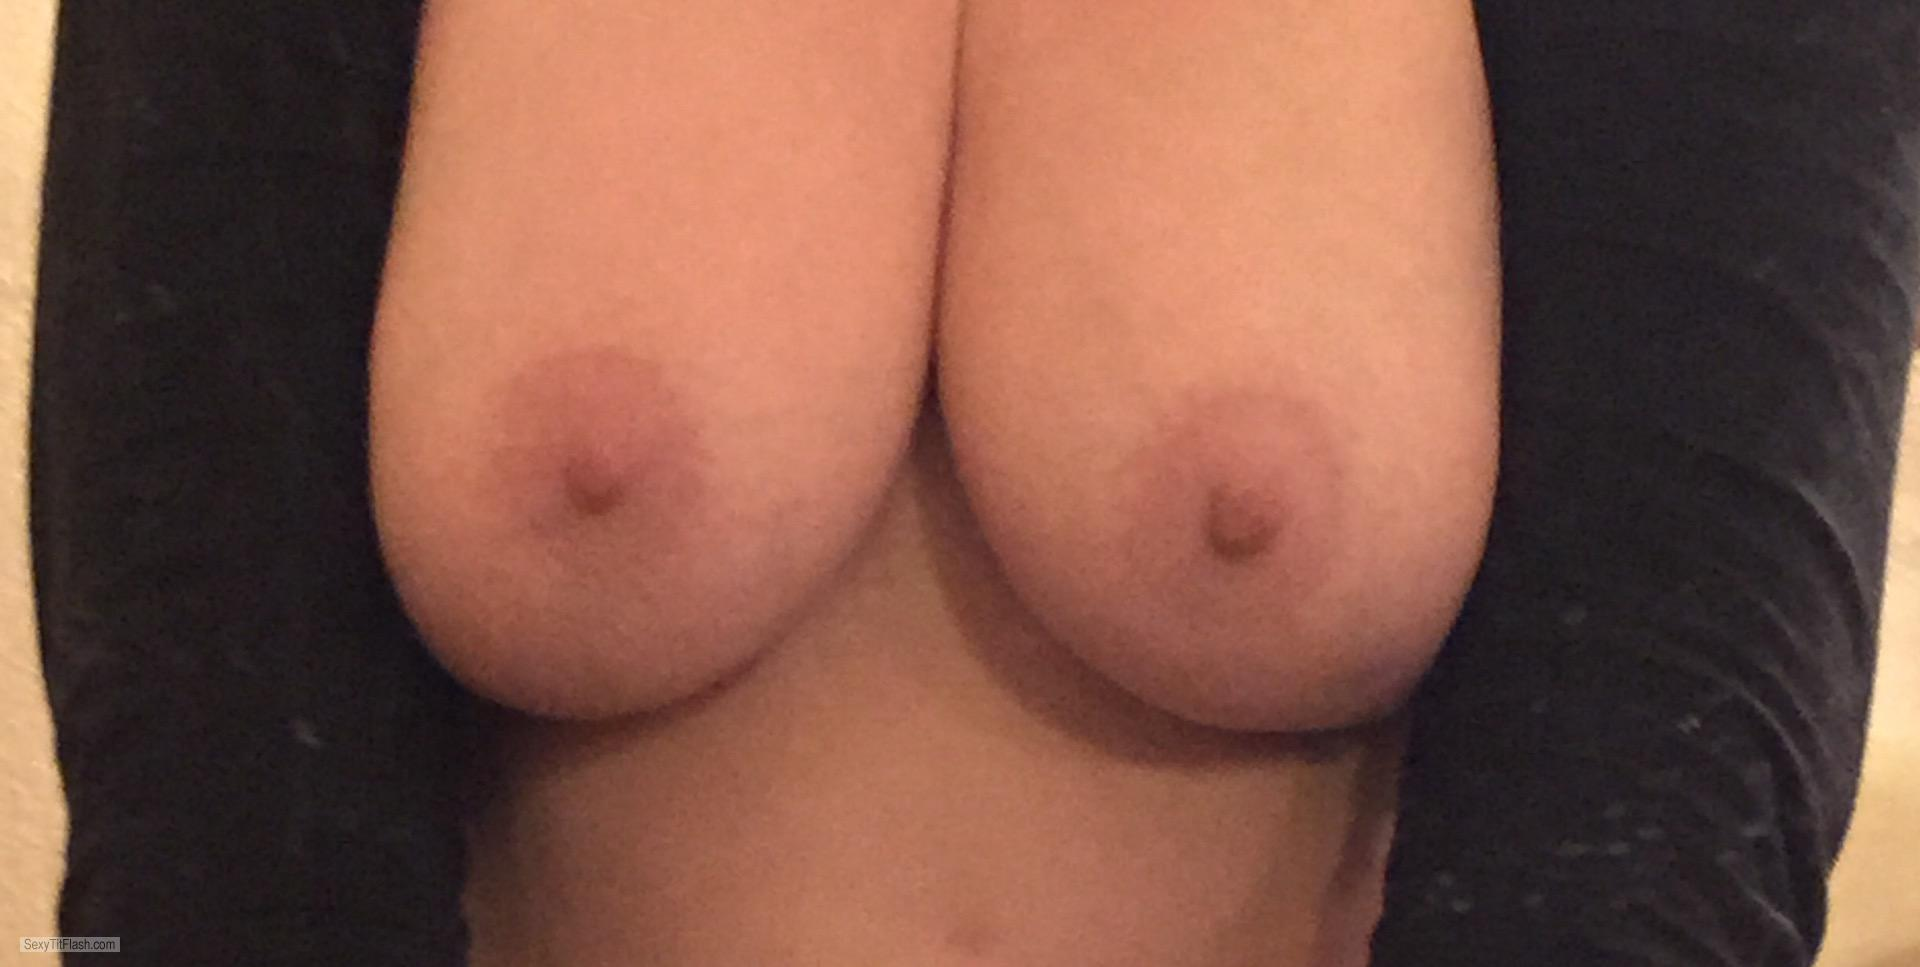 Tit Flash: Wife's Medium Tits (Selfie) - New Orleans Lady from United States